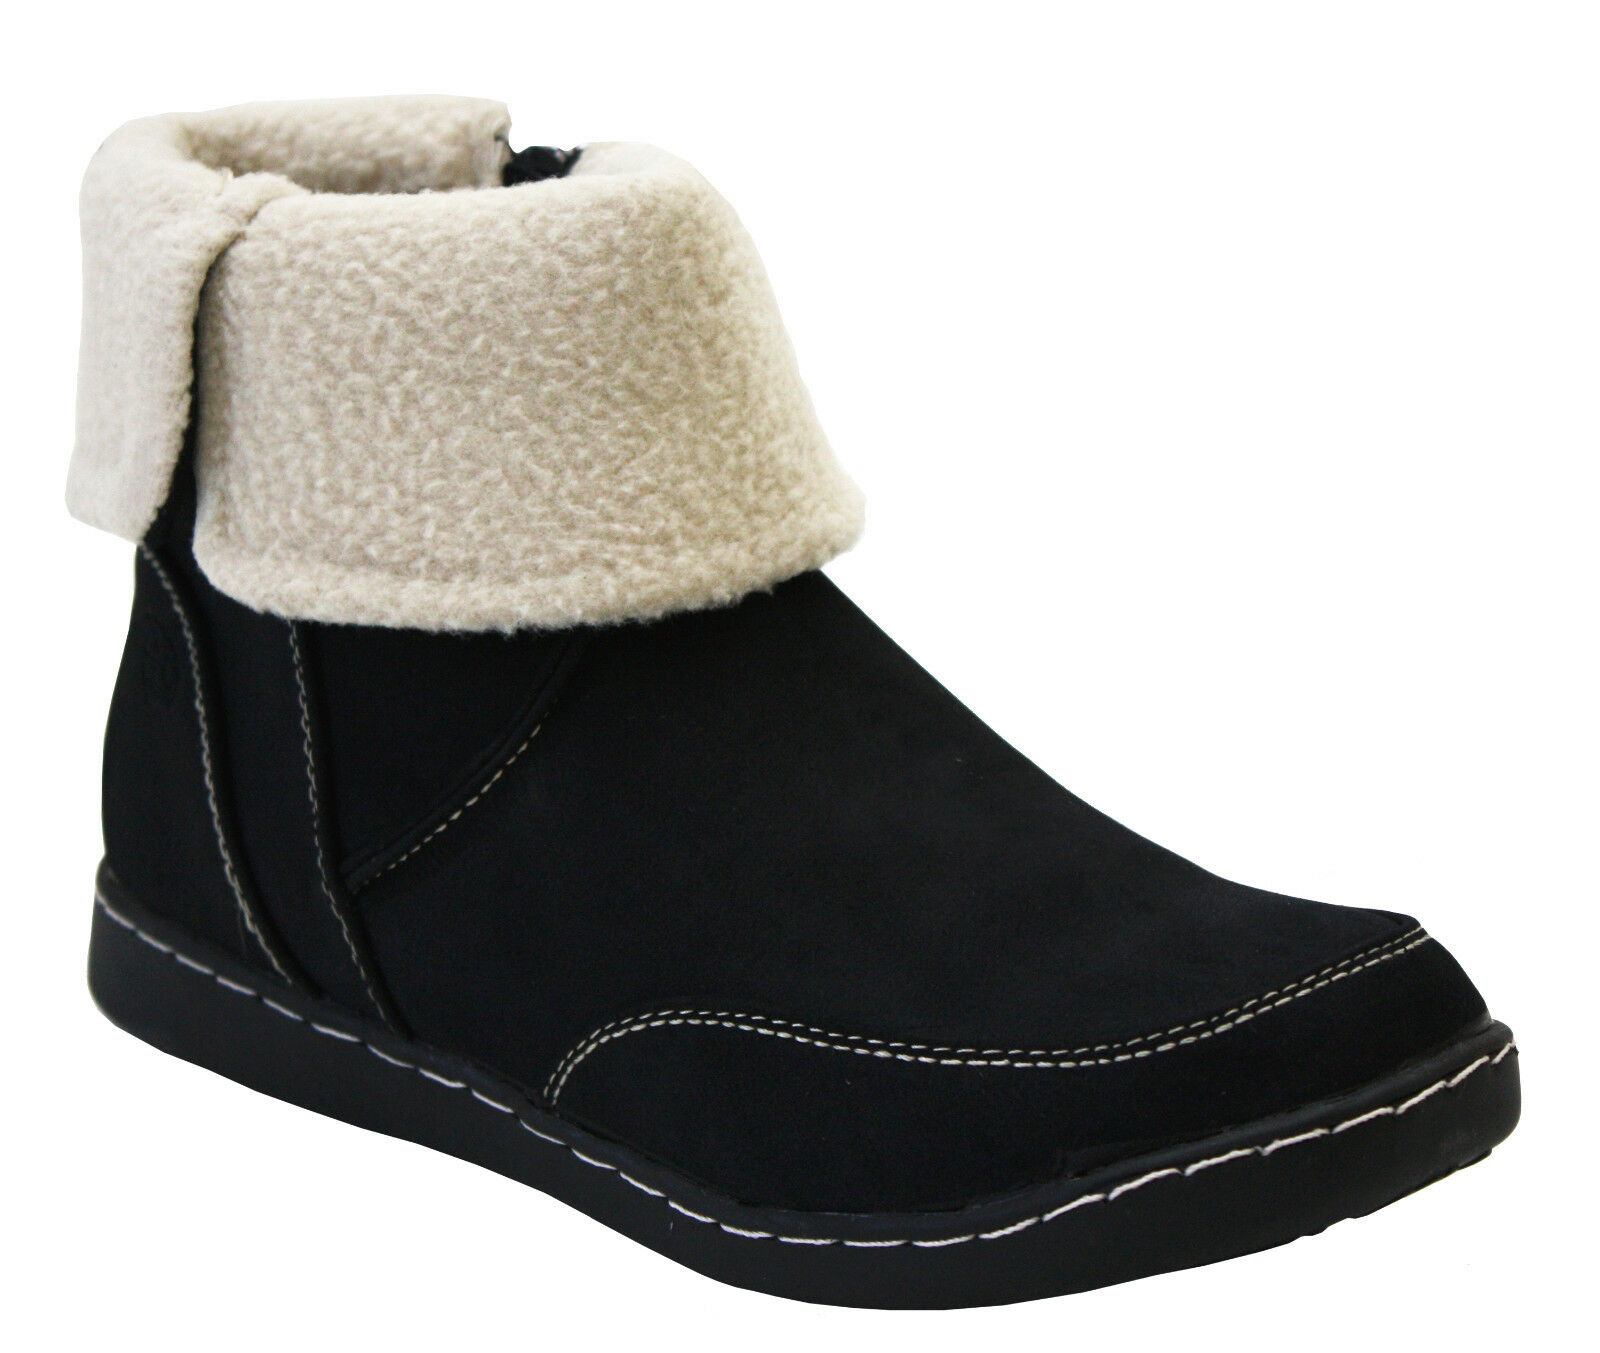 LADIES WOMENS FLEECE LINING WARM FLAT COMFORT ZIP ANKLE WINTER BOOTS SHOES 3-8